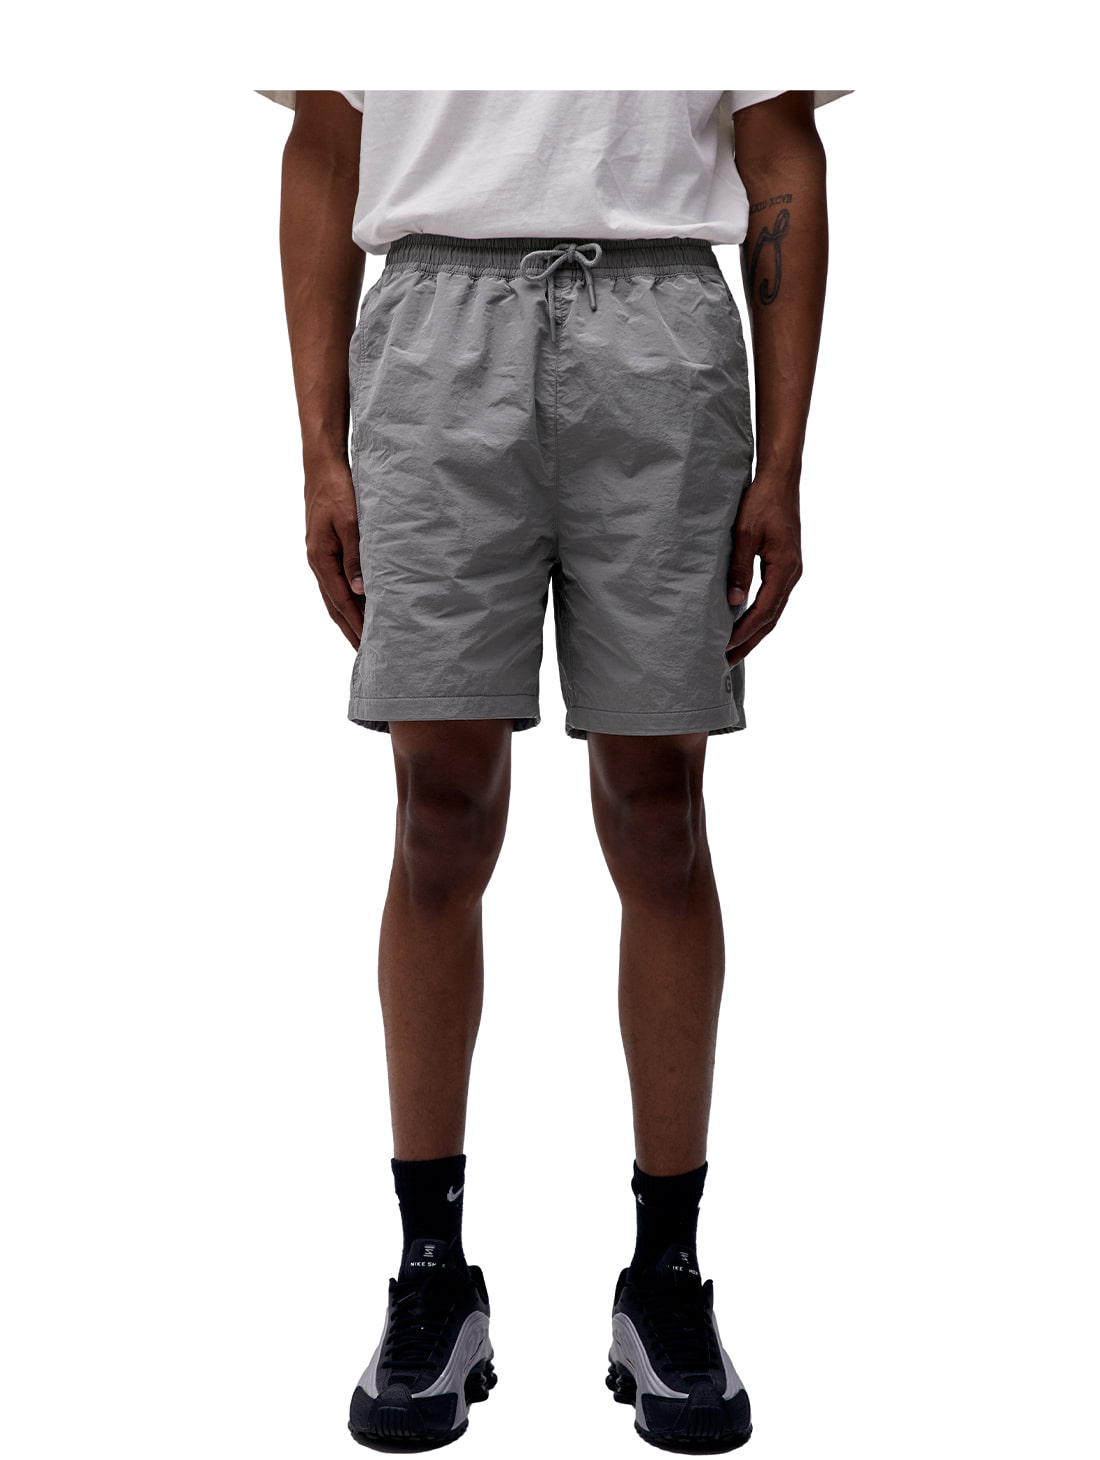 SOLID SHORTS - GREY